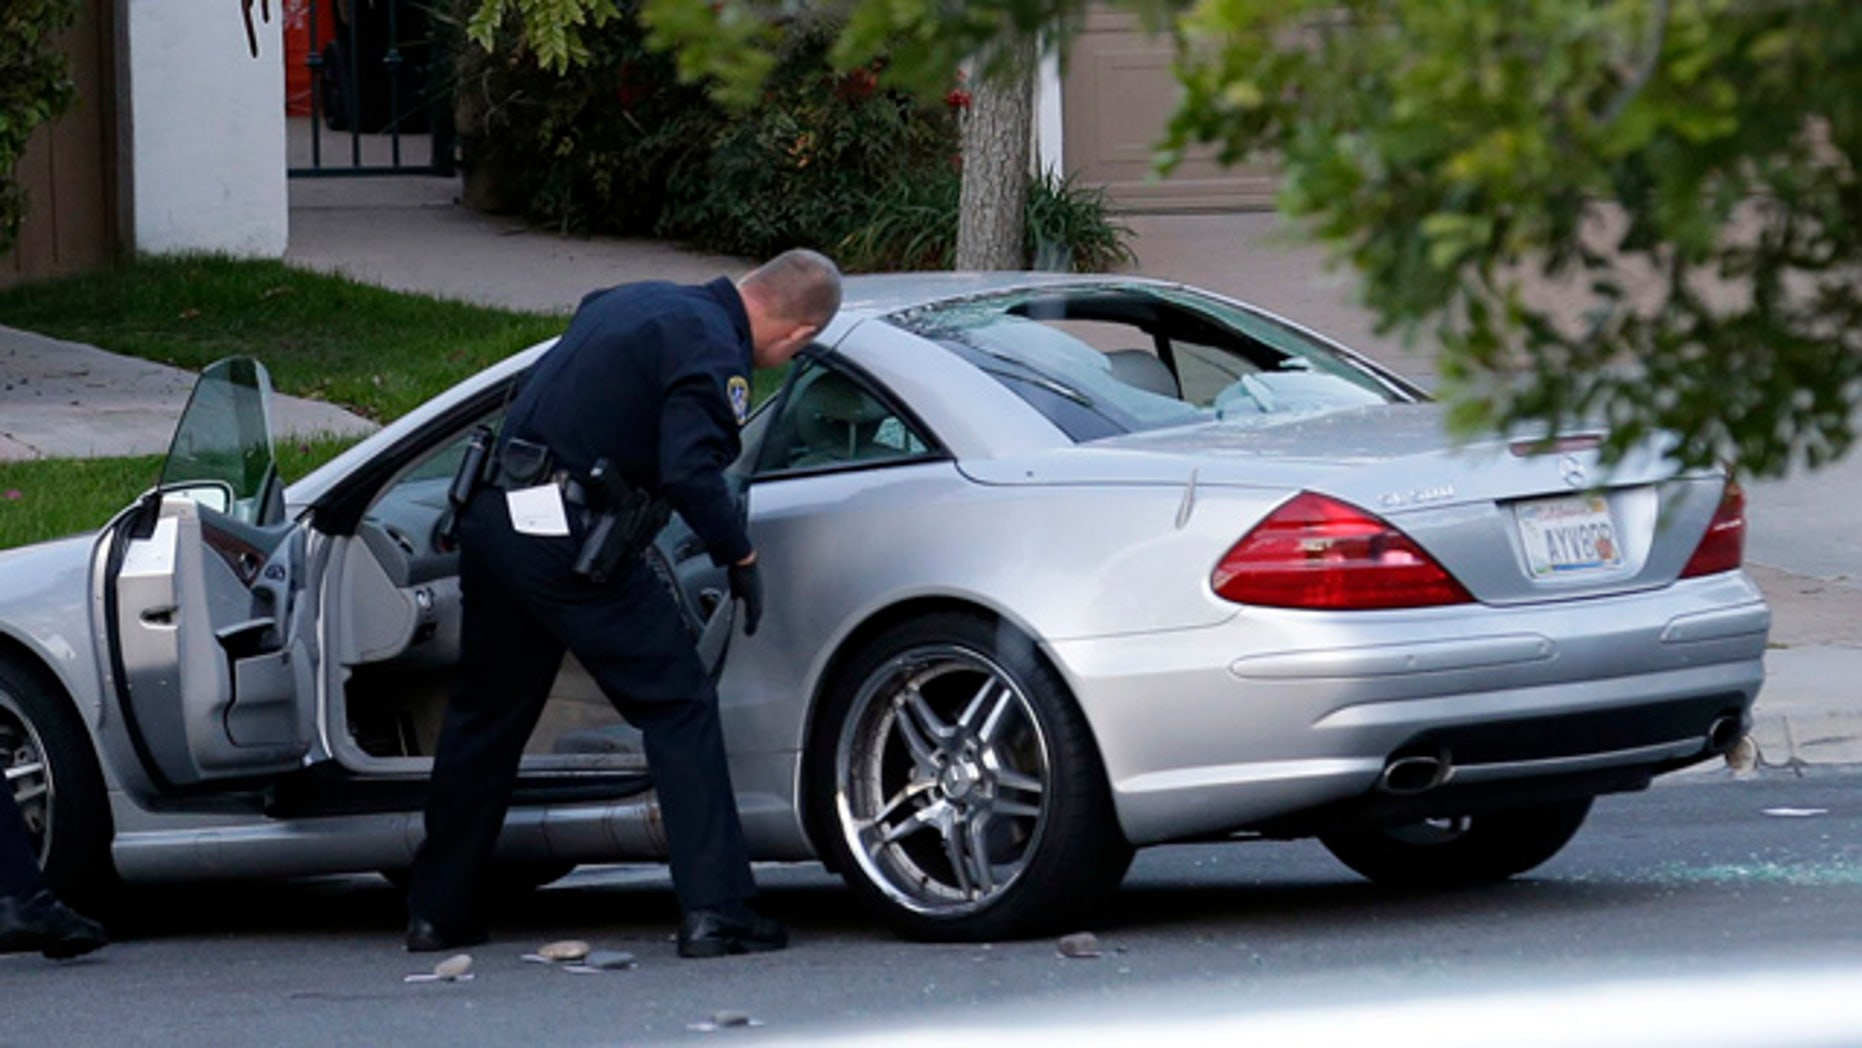 Feb. 10, 2015: Police examine the scene following a shooting in San Diego. CBS affiliate KFMB-TV says sports anchor Kyle Kraska was attacked Tuesday afternoon in the Scripps Ranch area of the city. (AP Photo/Gregory Bull)